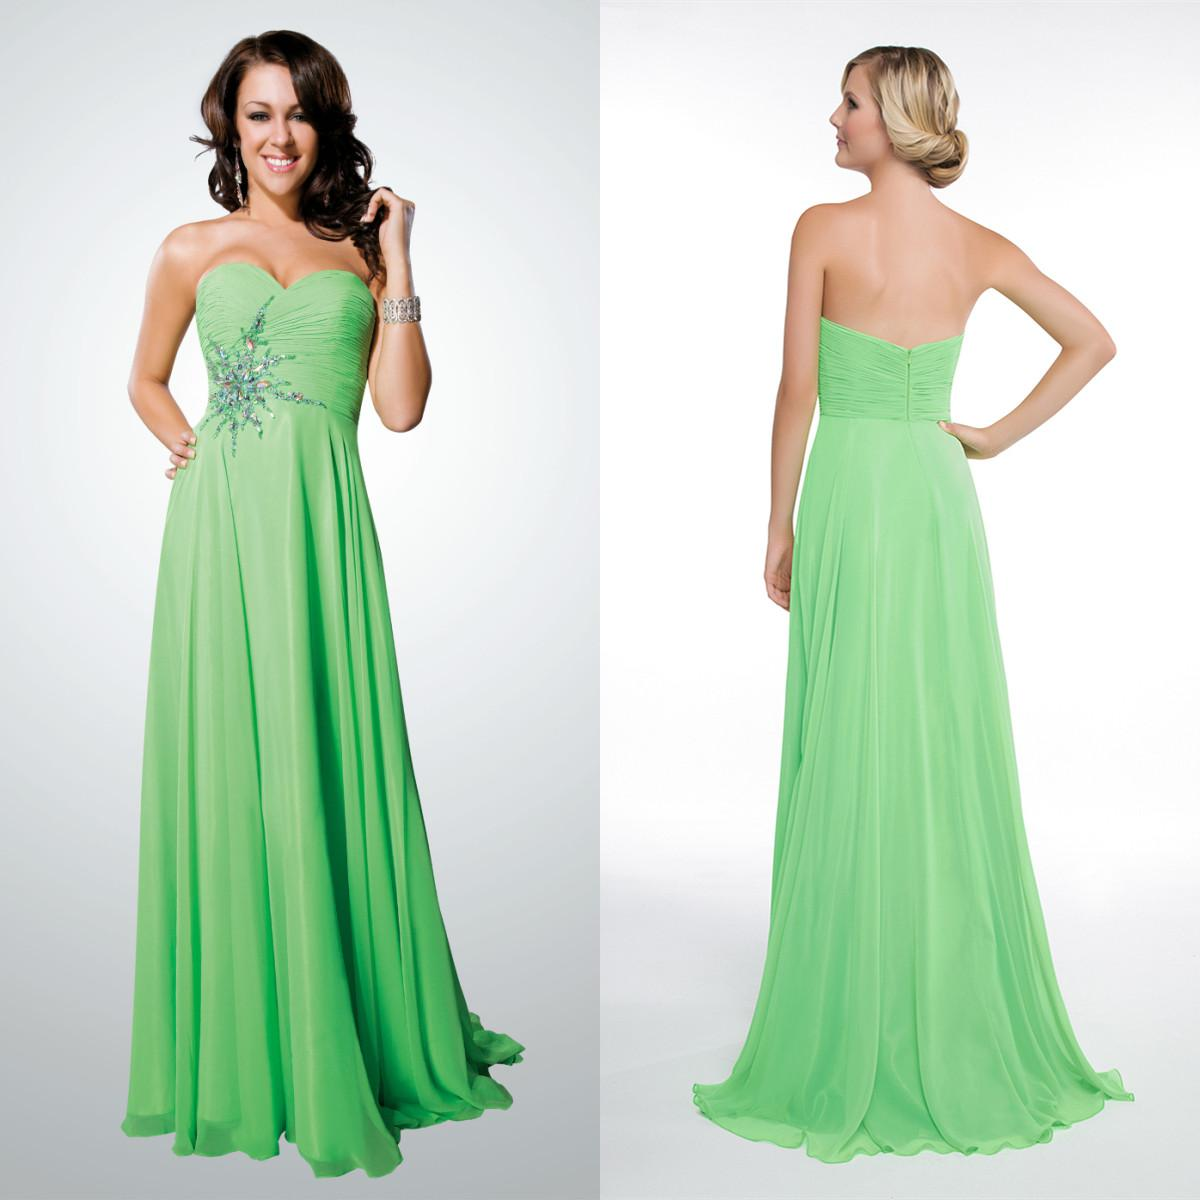 Under Green Prom